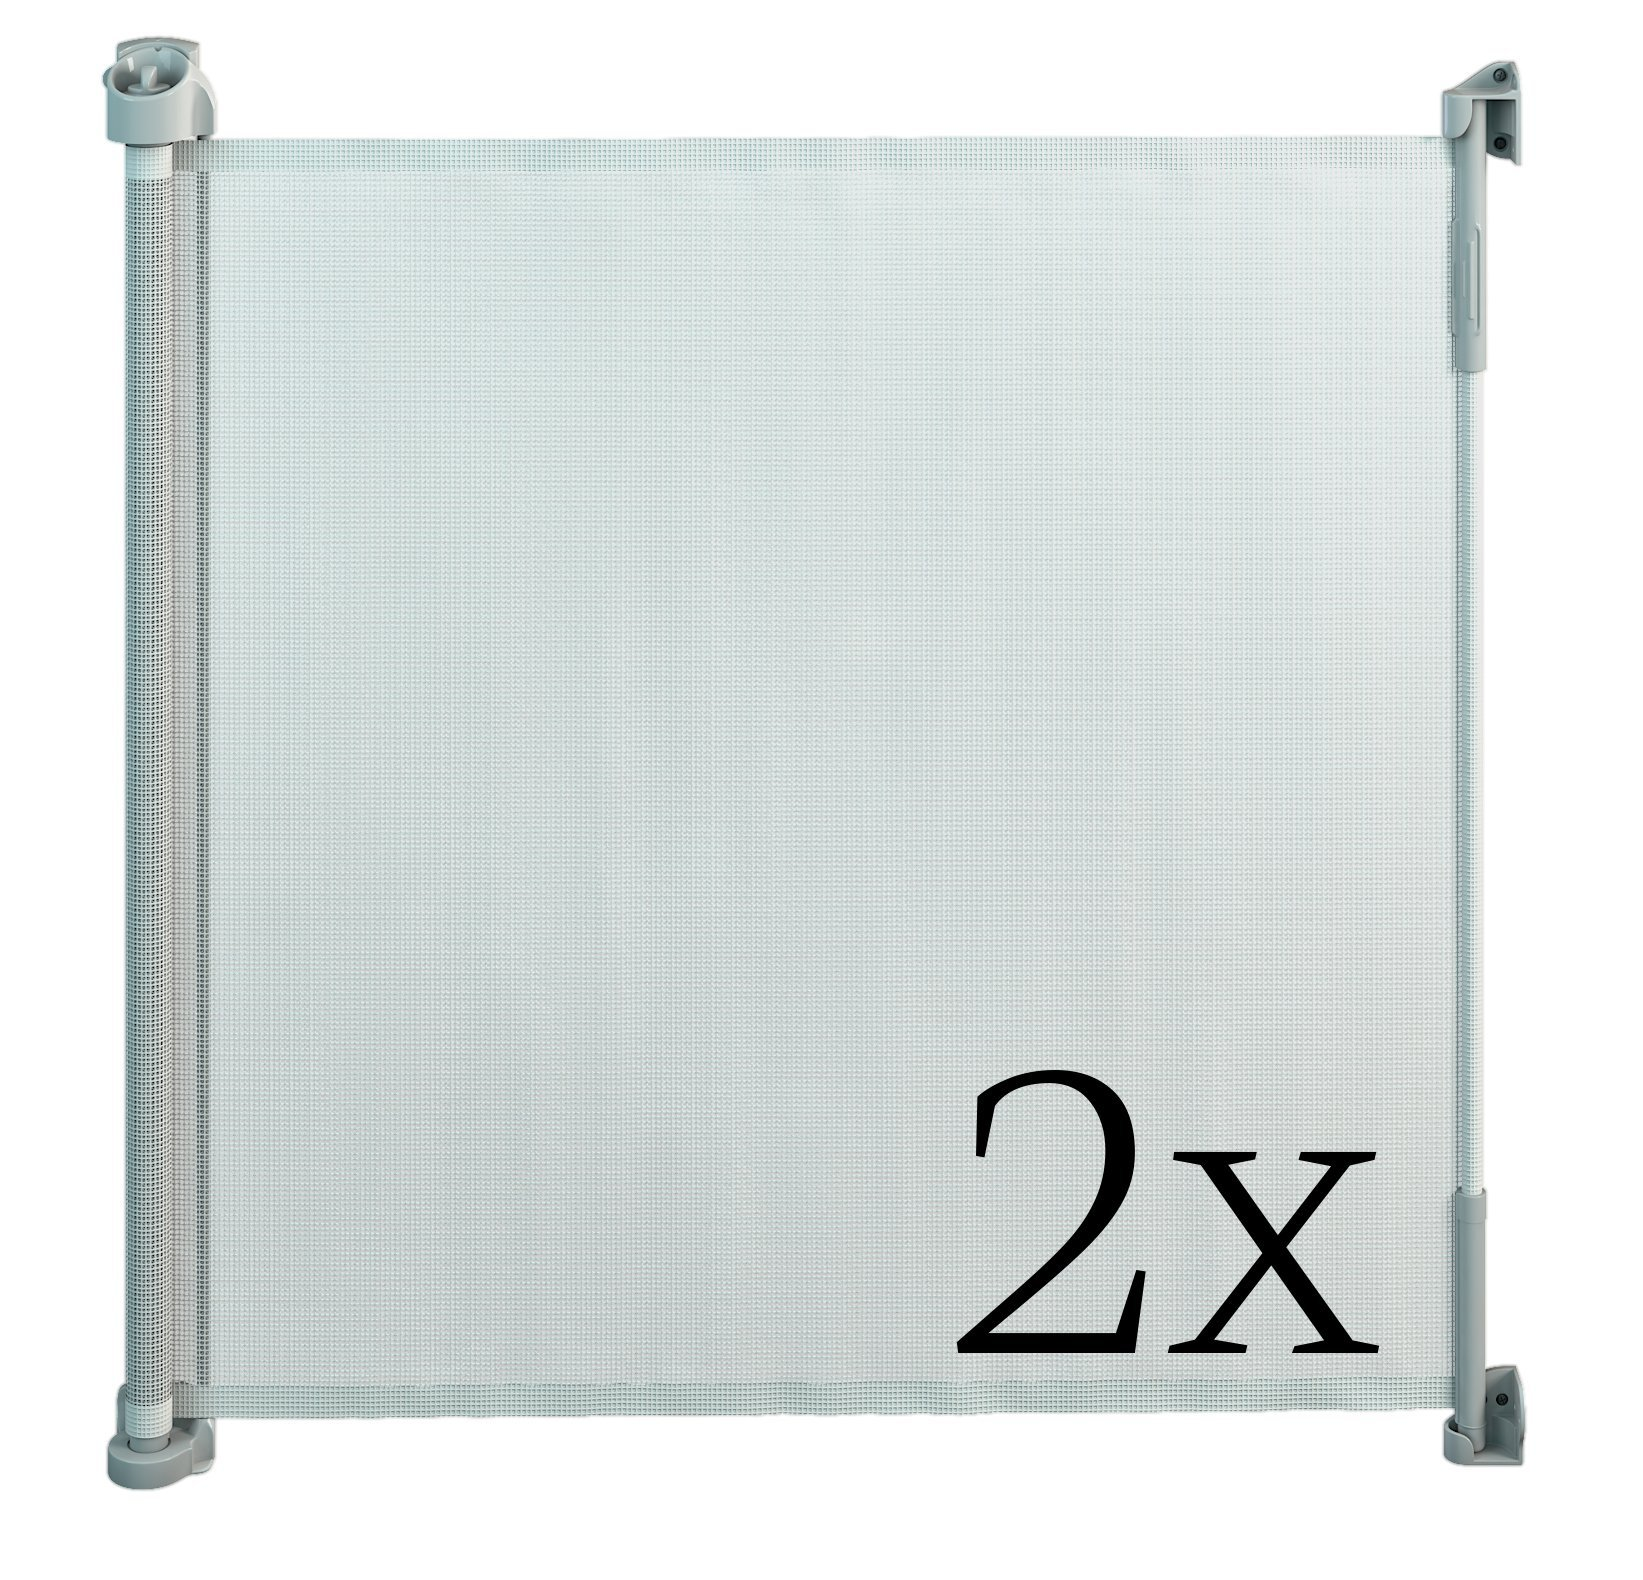 Gaterol Active Lite White Double Pack - Retractable Safety Gate - Super Safe 36.6'' Tall and Opens up to 55''